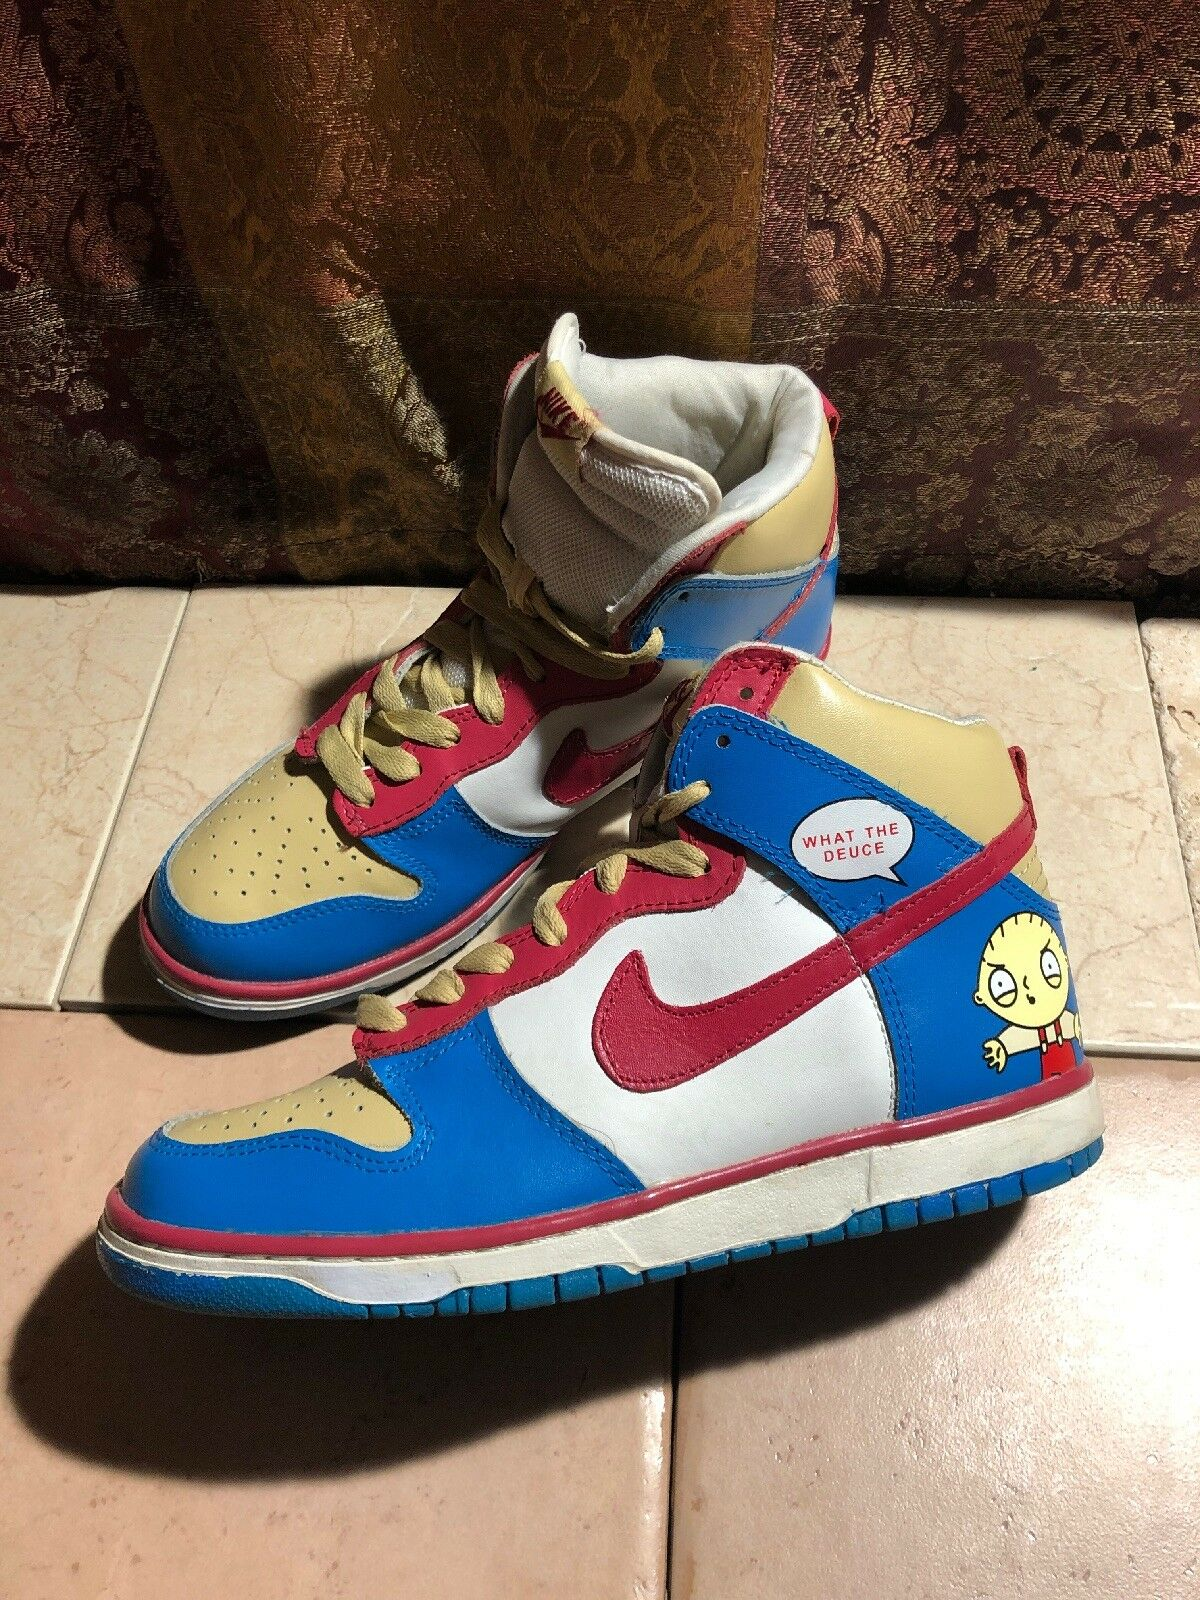 Nike Men's Dunk High What The Deuce Family Guy Stewie Sneakers Size 8.5 US